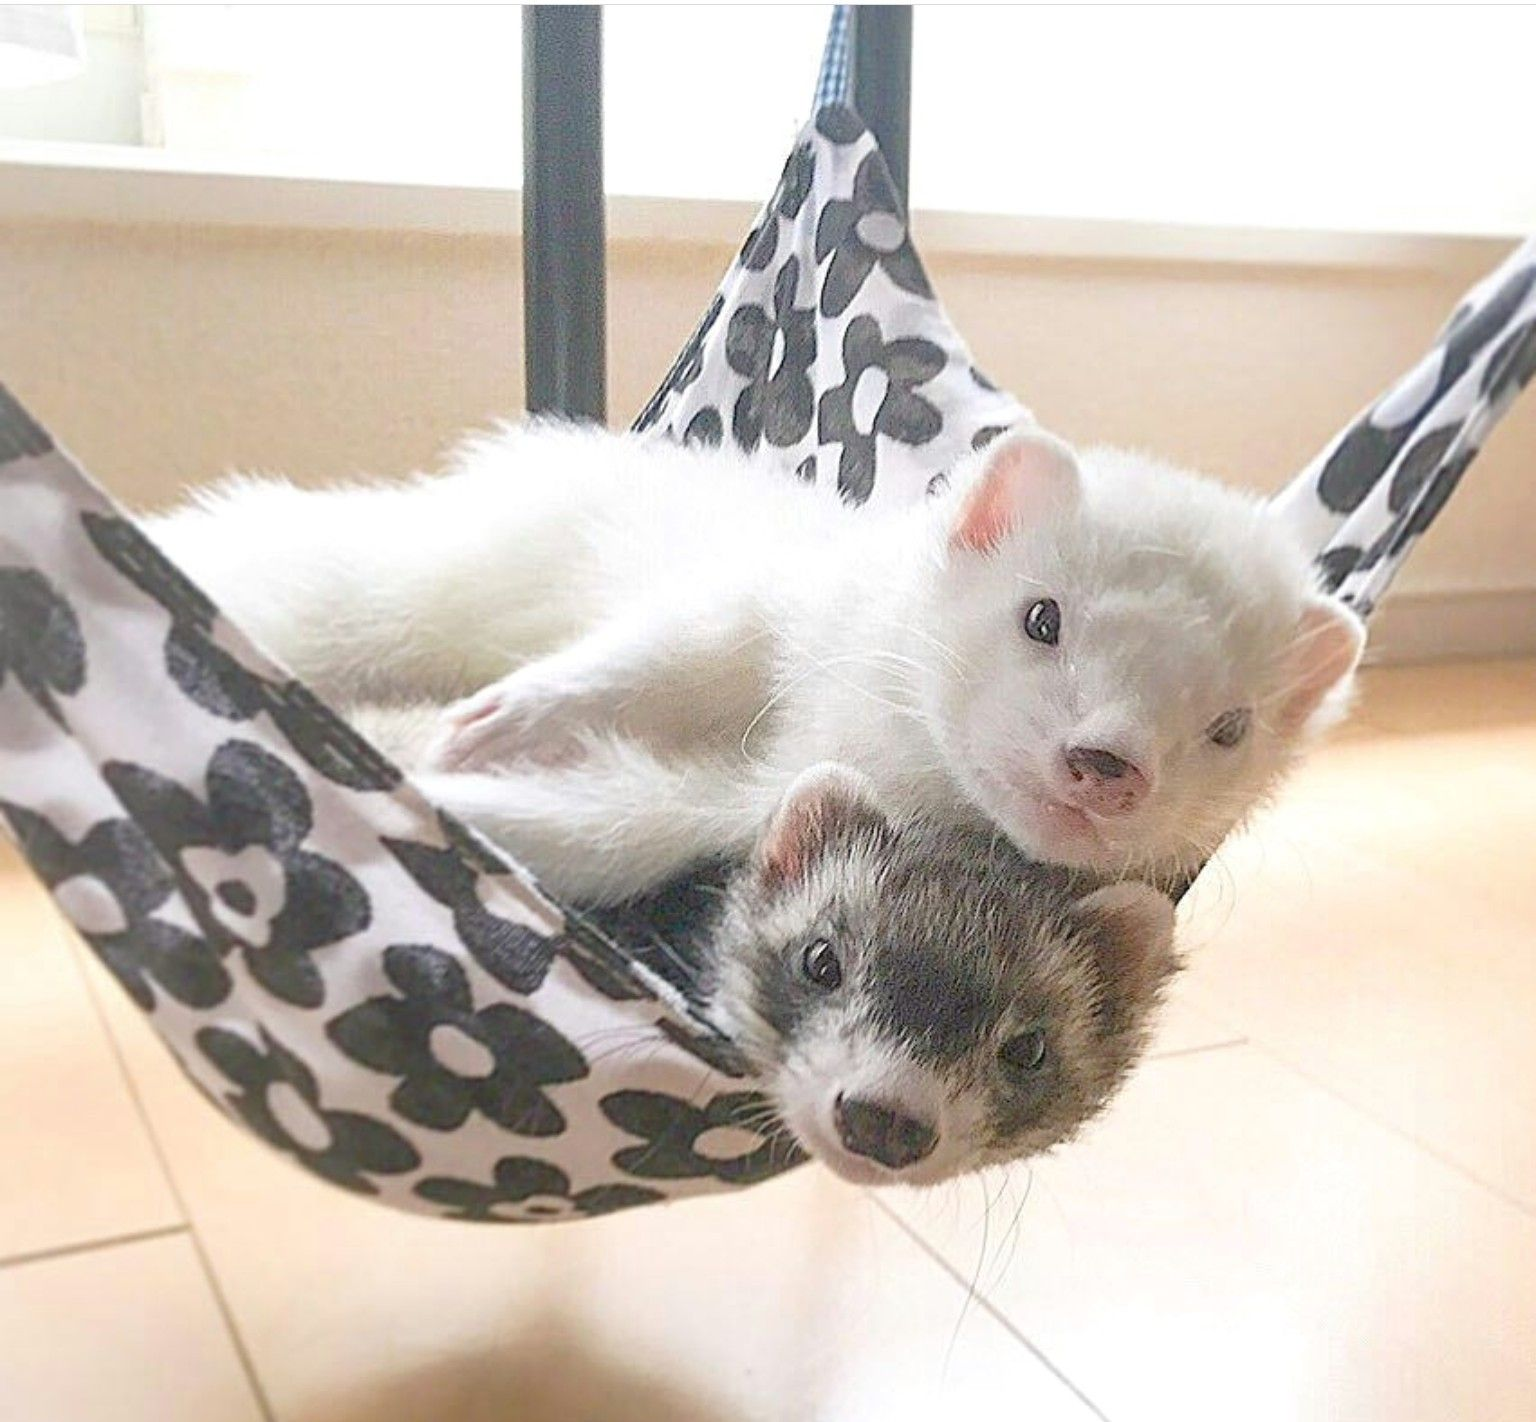 Out Of This World Cute Cute Ferrets Pet Ferret Baby Ferrets